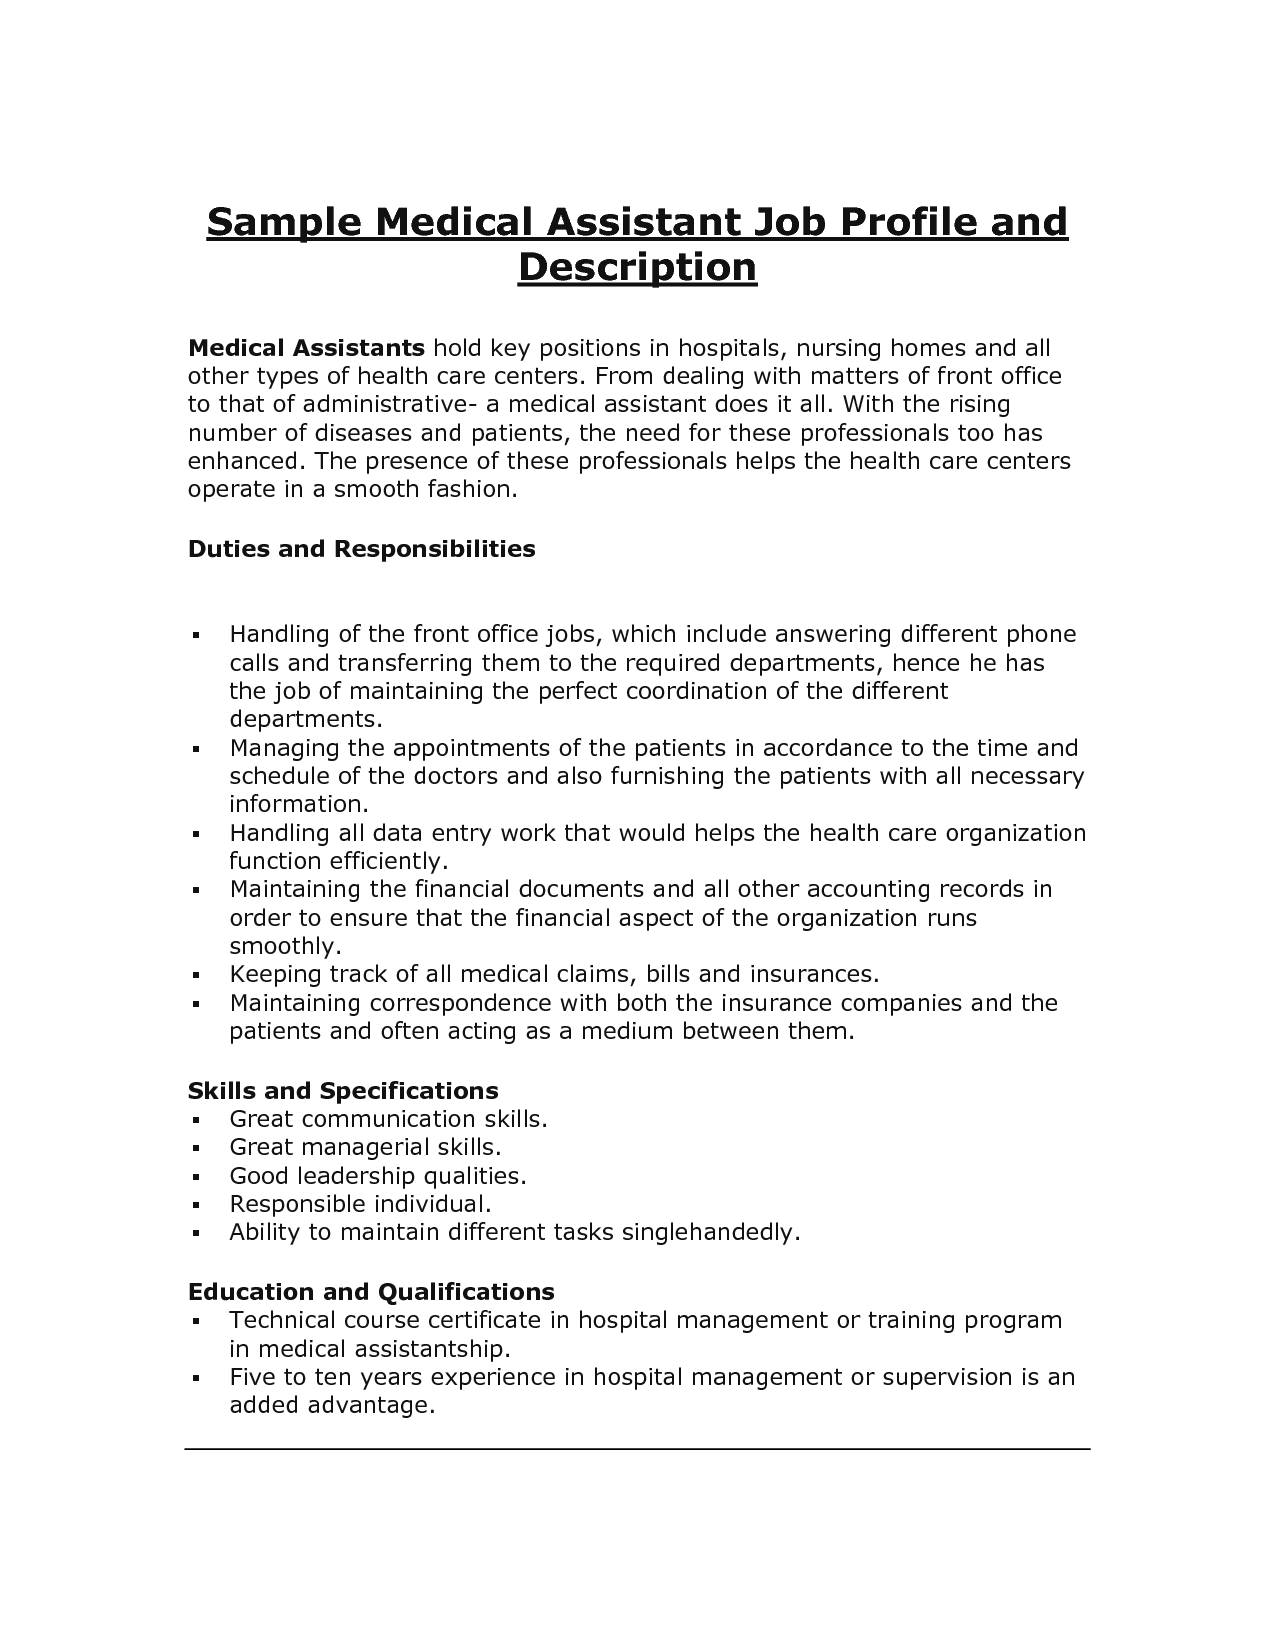 doctor assistant job description - Boat.jeremyeaton.co